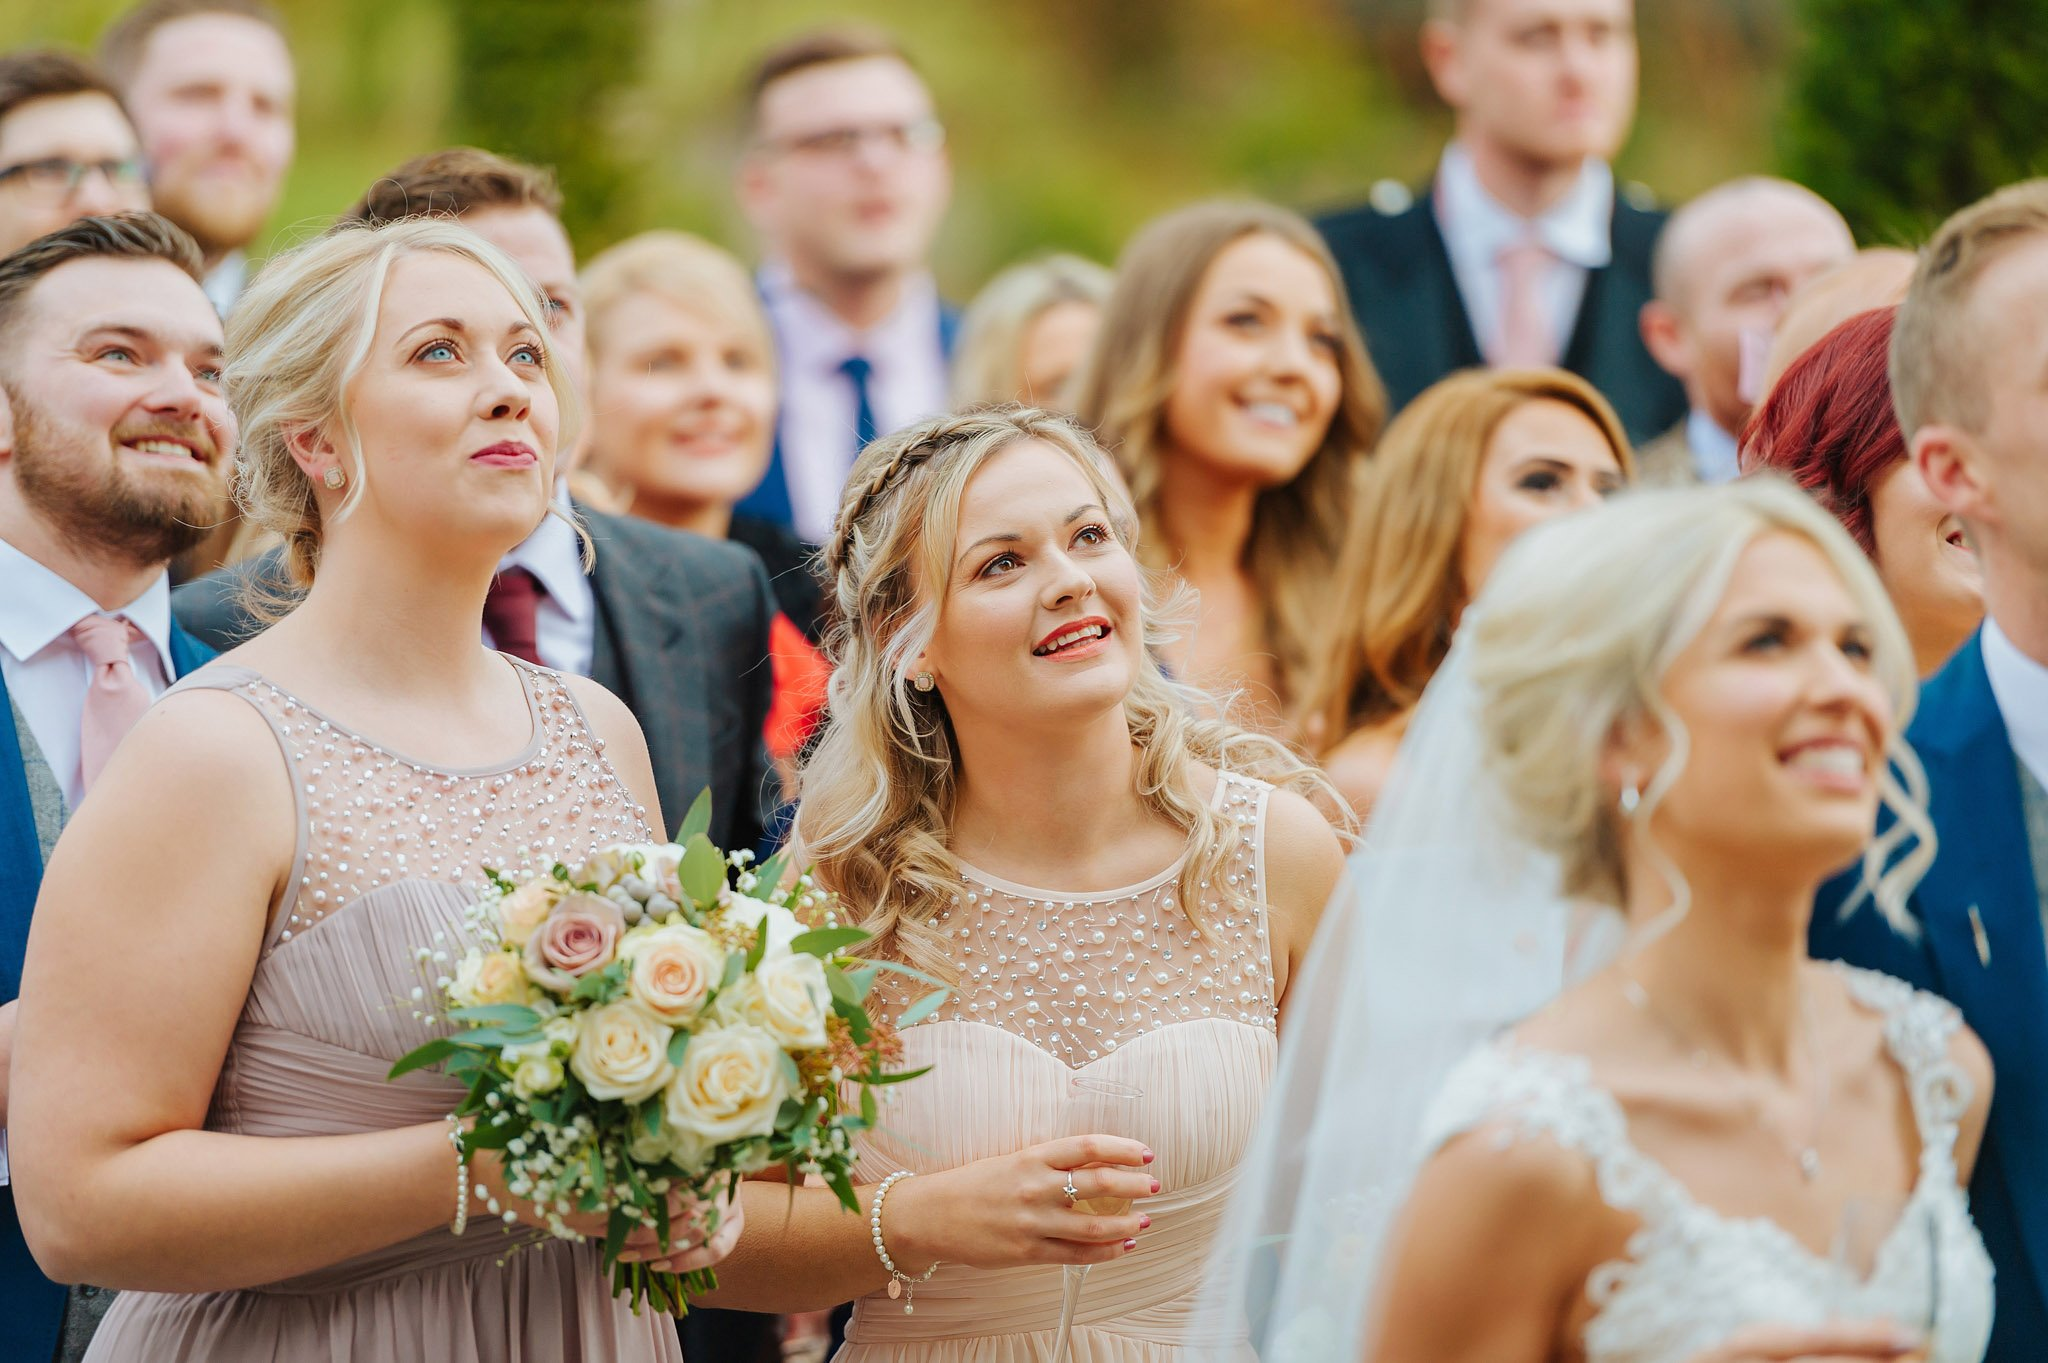 lemore manor wedding herefordshire 52 - Lemore Manor wedding, Herefordshire - West Midlands | Sadie + Ken